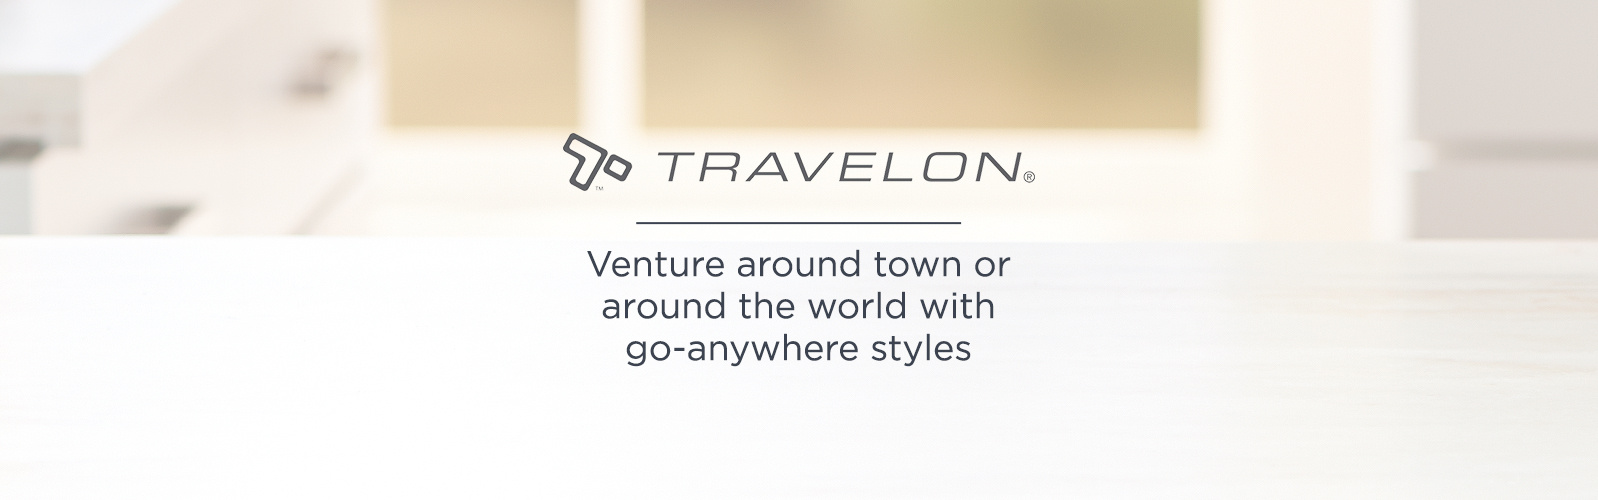 Travelon Venture around town or around the world with go-anywhere styles